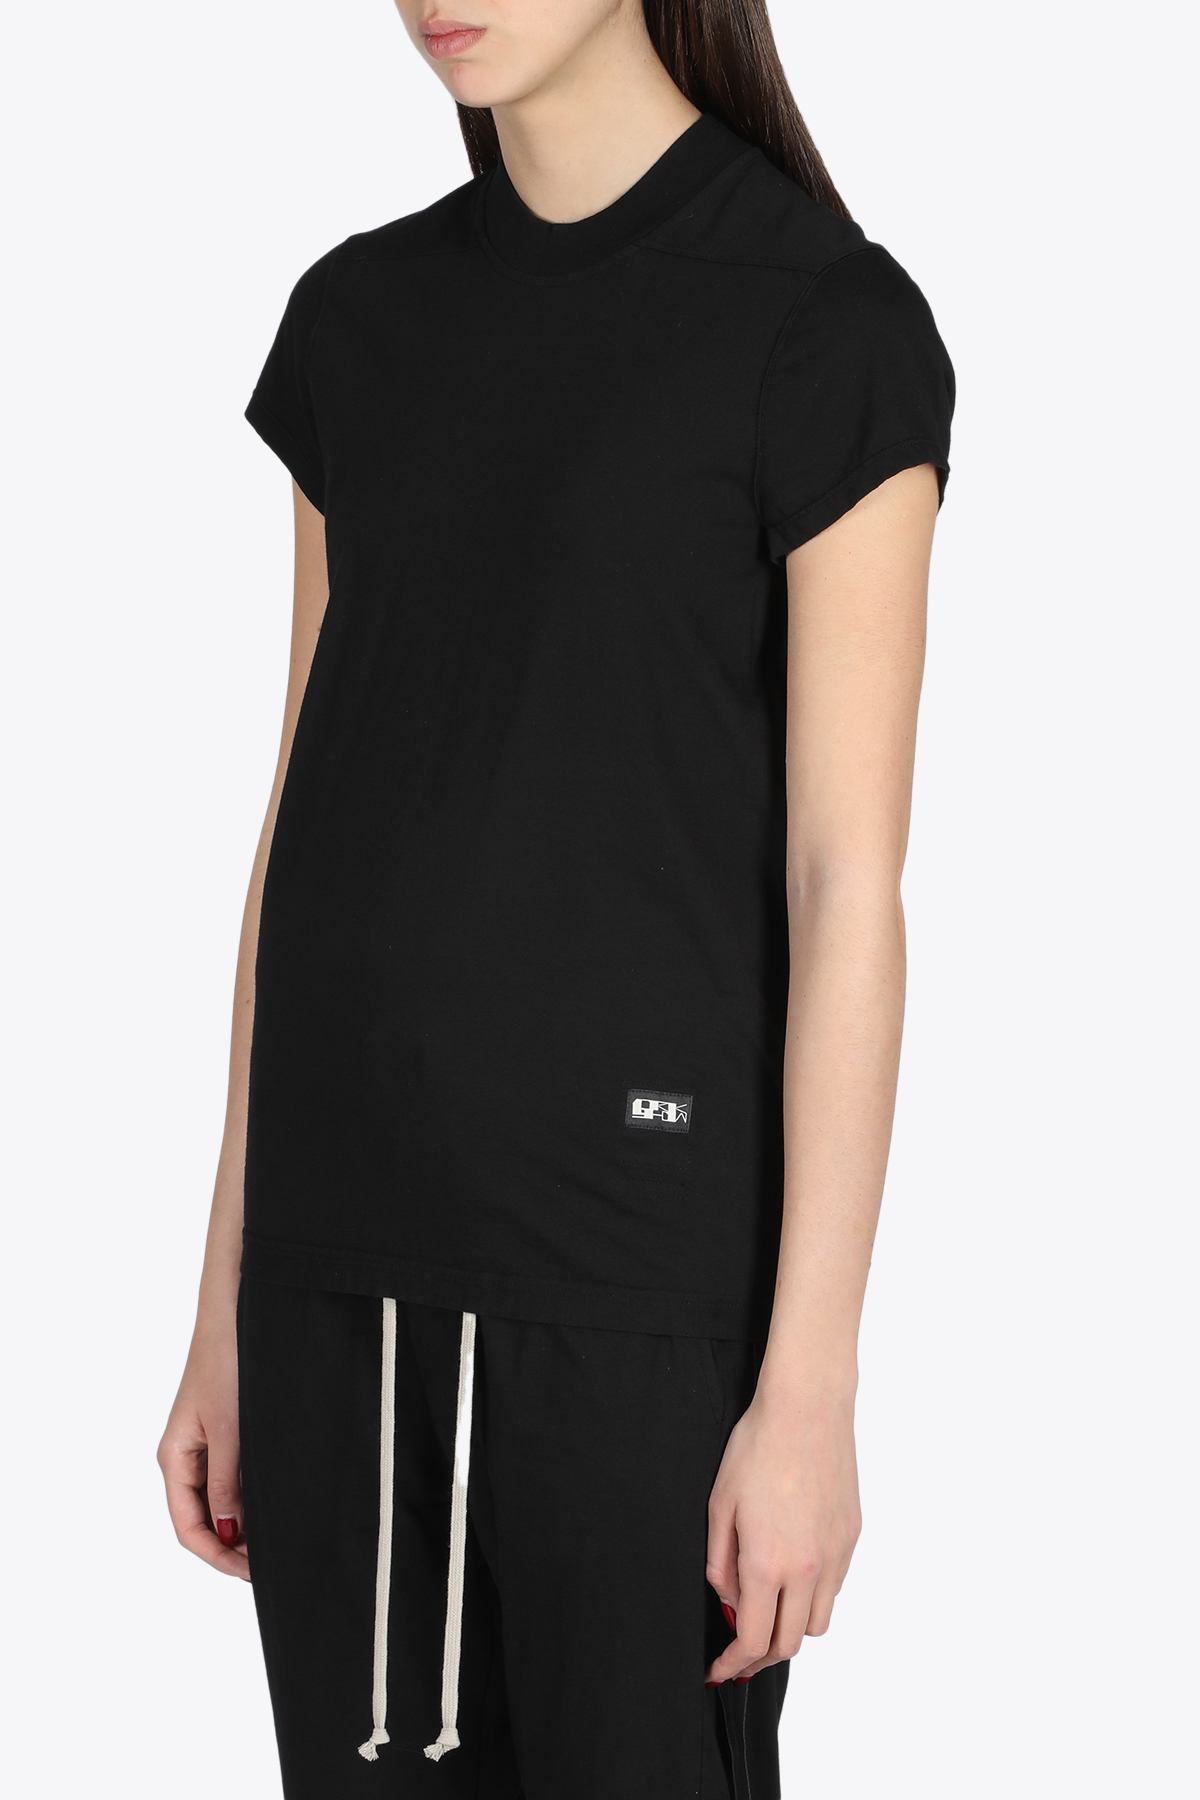 T-SHIRT CORTA IN COTONE NERA RICK OWENS-DRKSHDW | 8 | DS21S2208 RN SMALL LEVEL TEE09